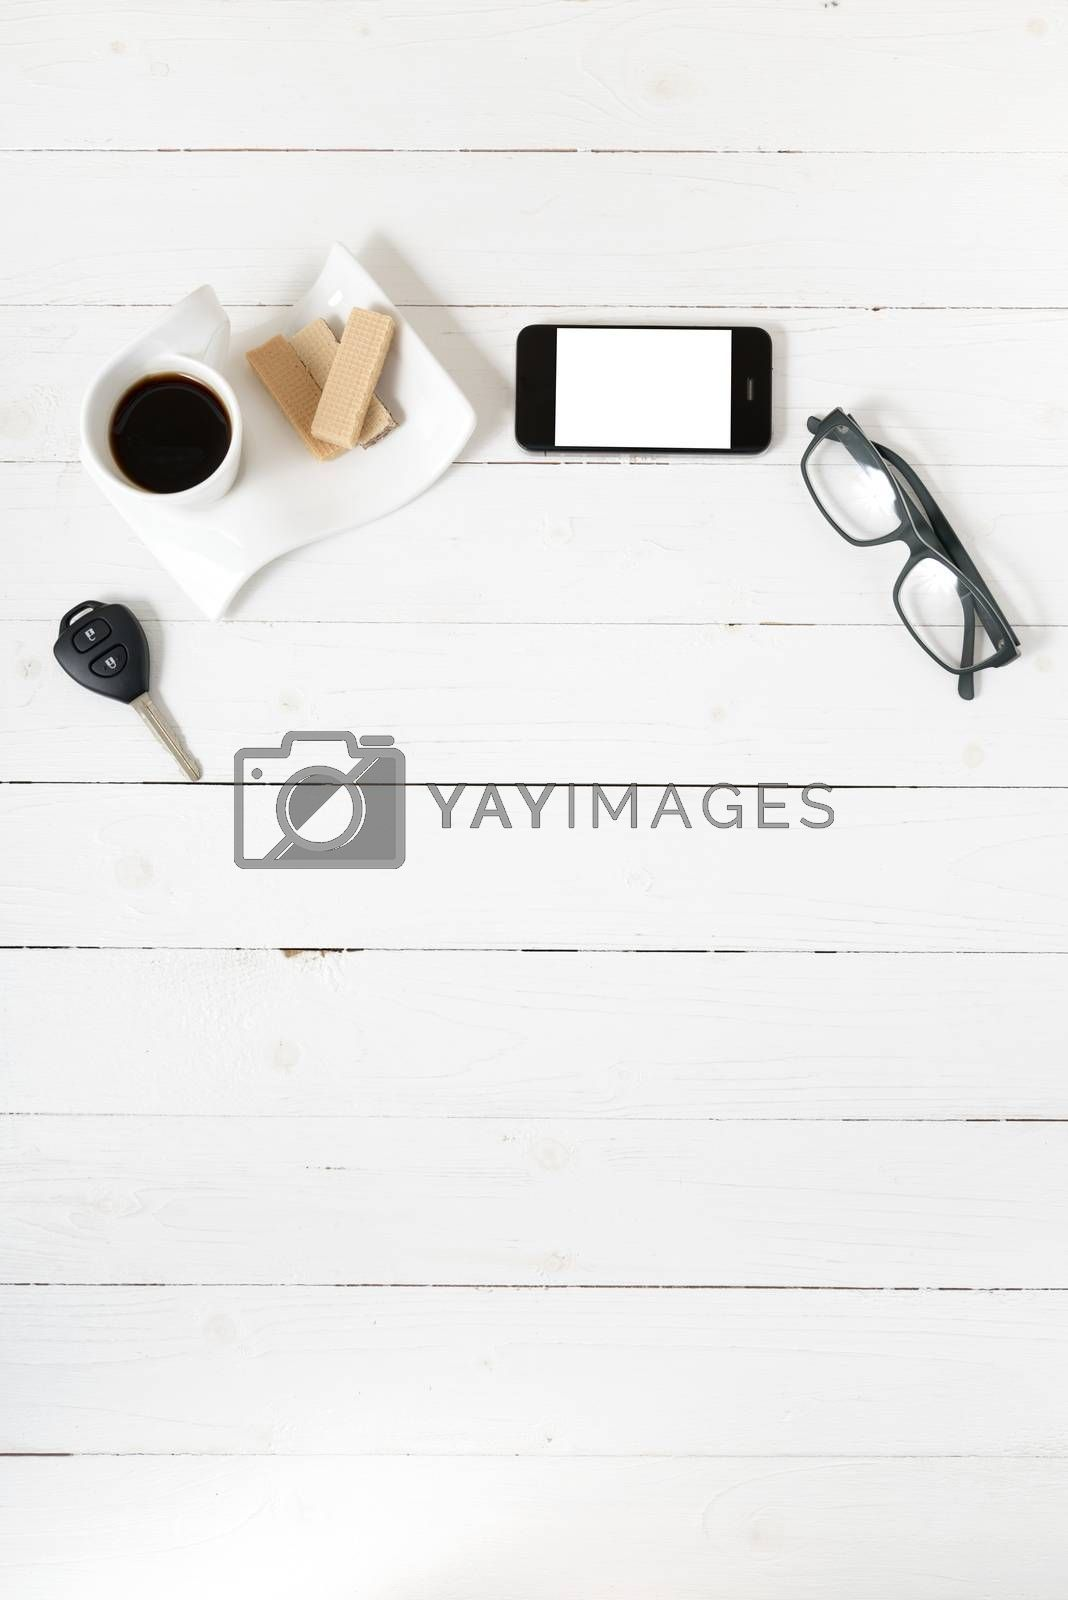 coffee cup with wafer,phone,car key,eyeglasses on white wood background